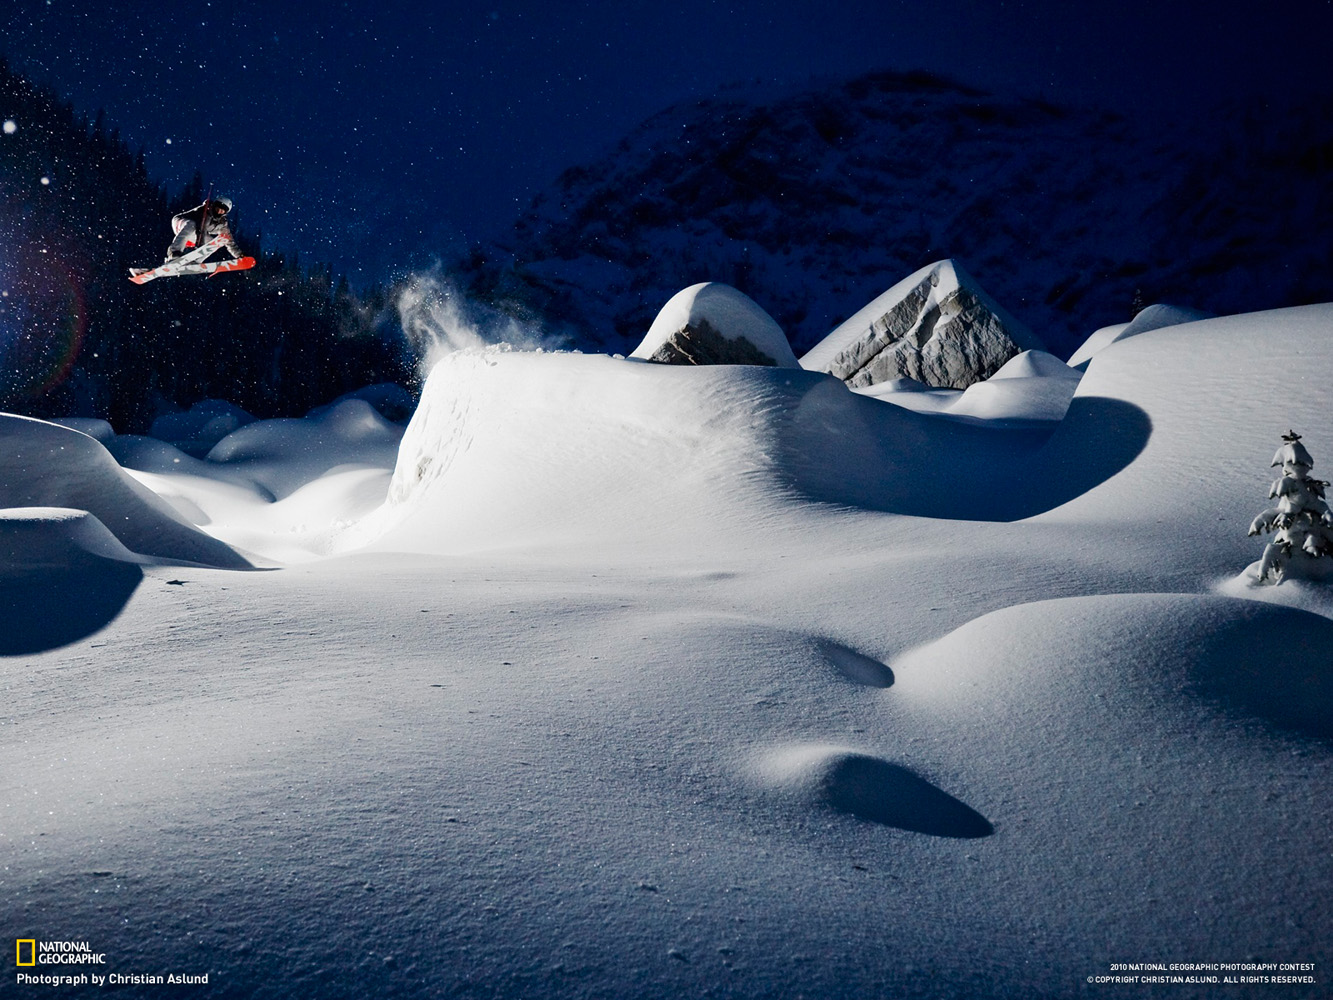 Location: Fernie, Canada Skier: Adam Falk